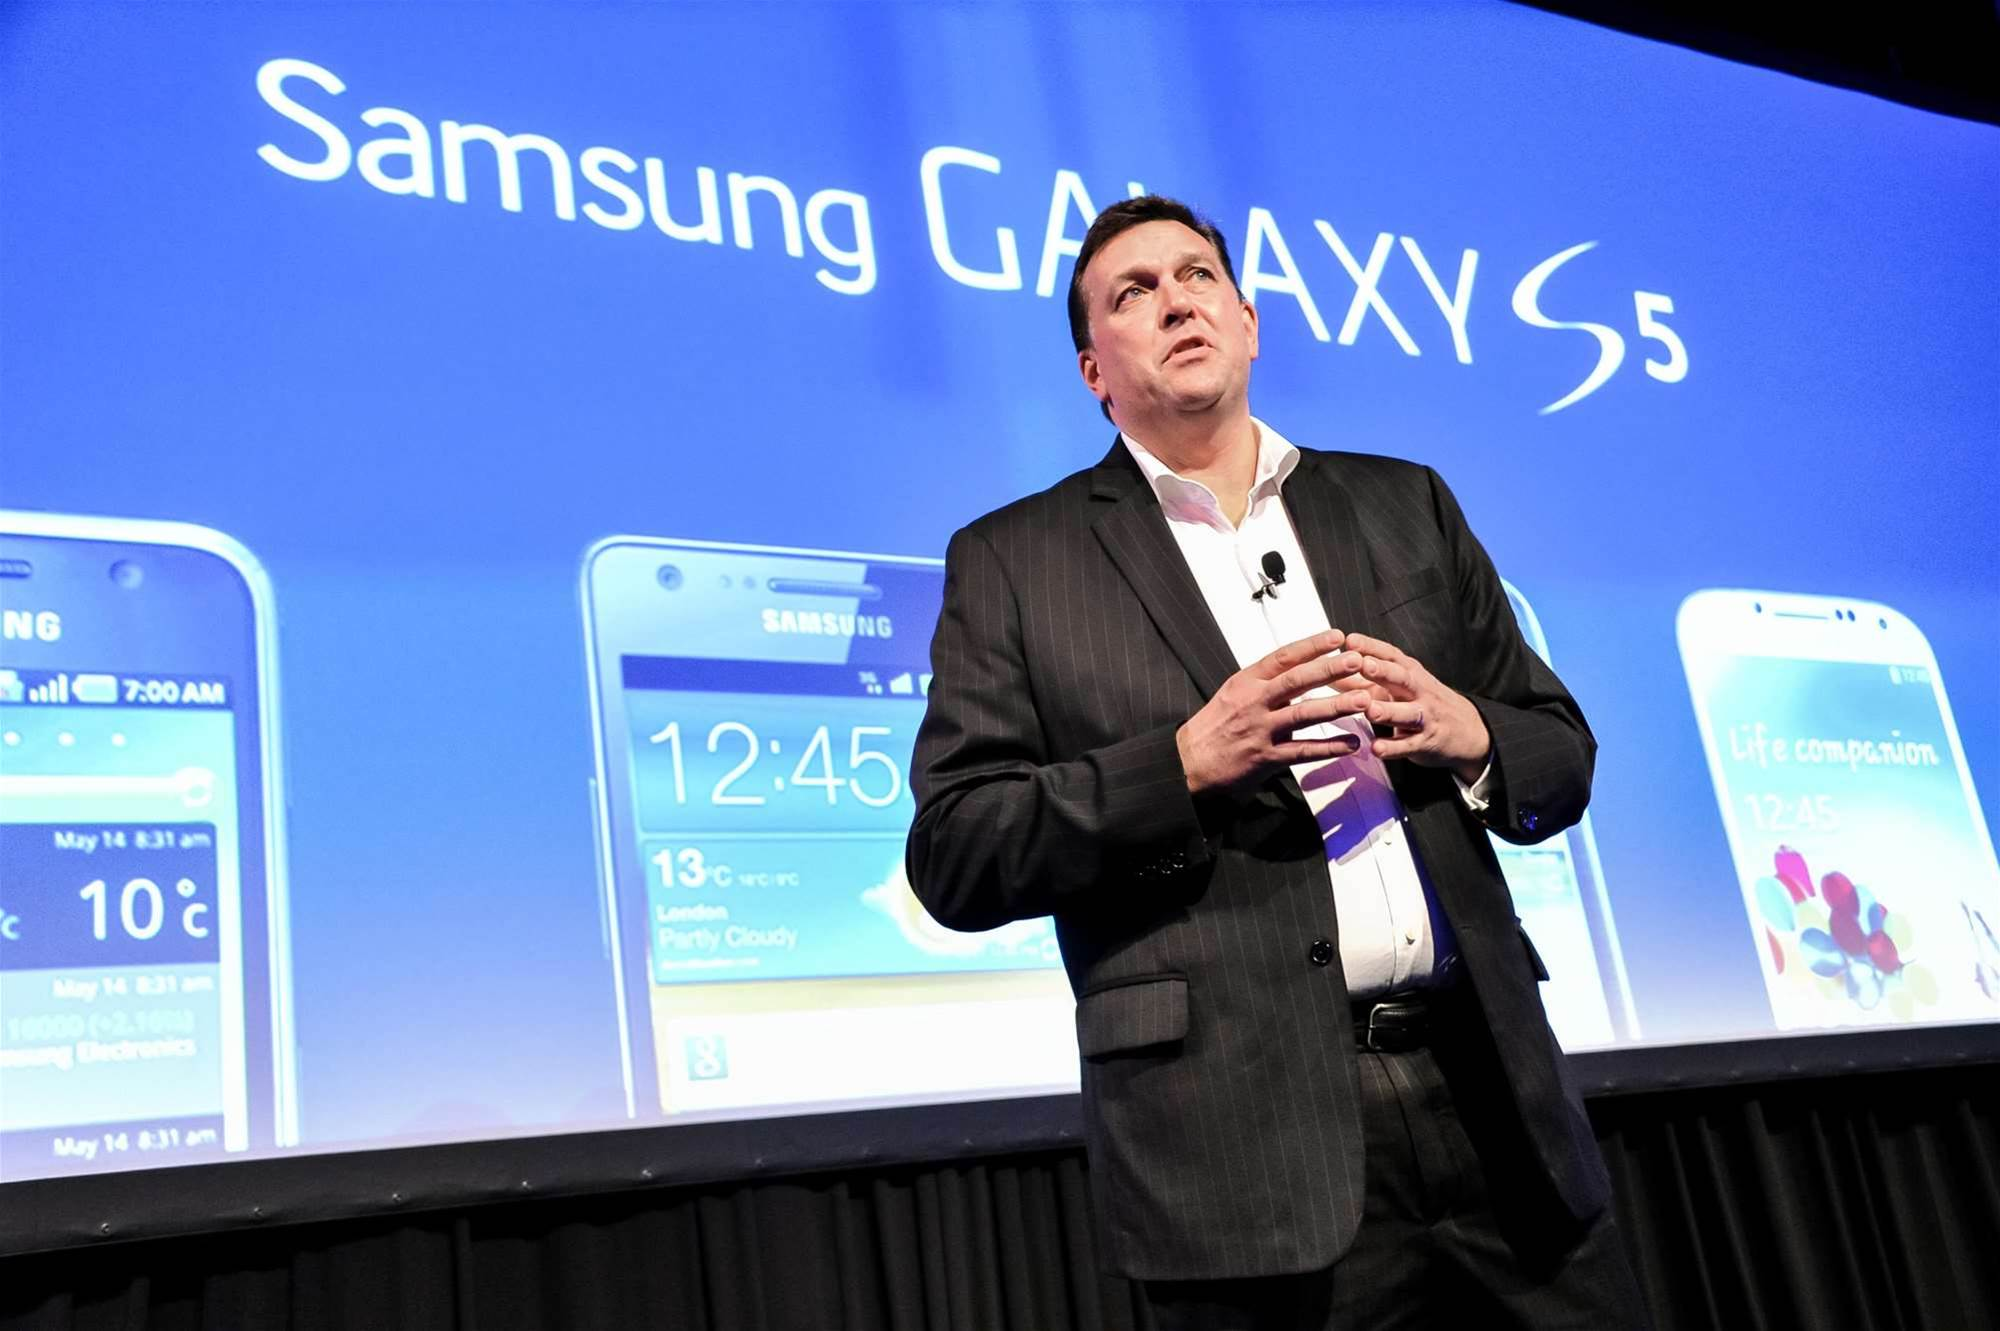 Samsung Galaxy S5 pricing, plans, revealed